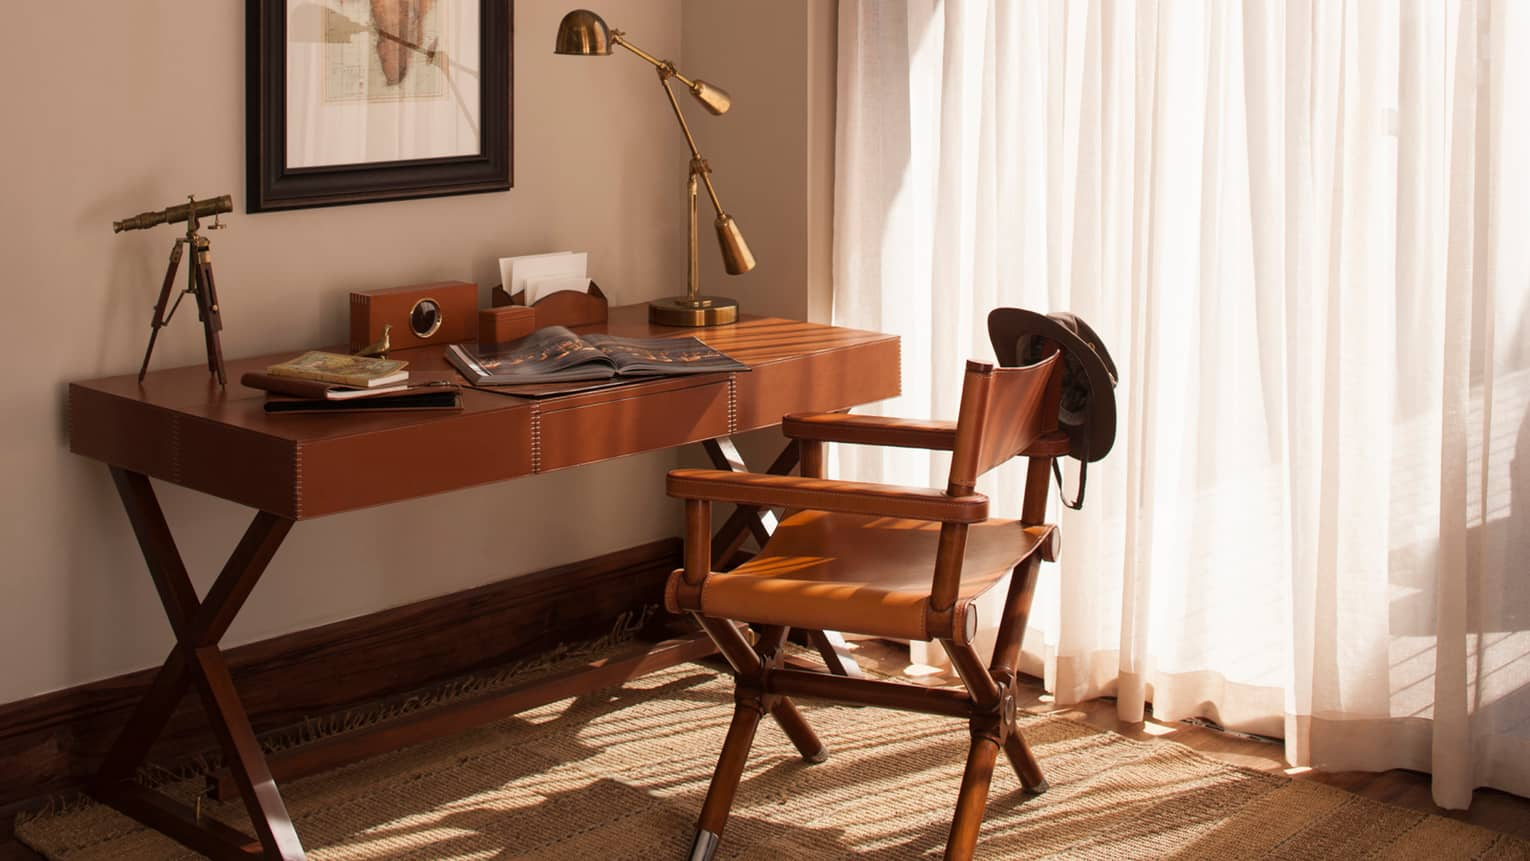 Presidential Villa wood desk with open magazine, brass lamp and telescope, leather chair